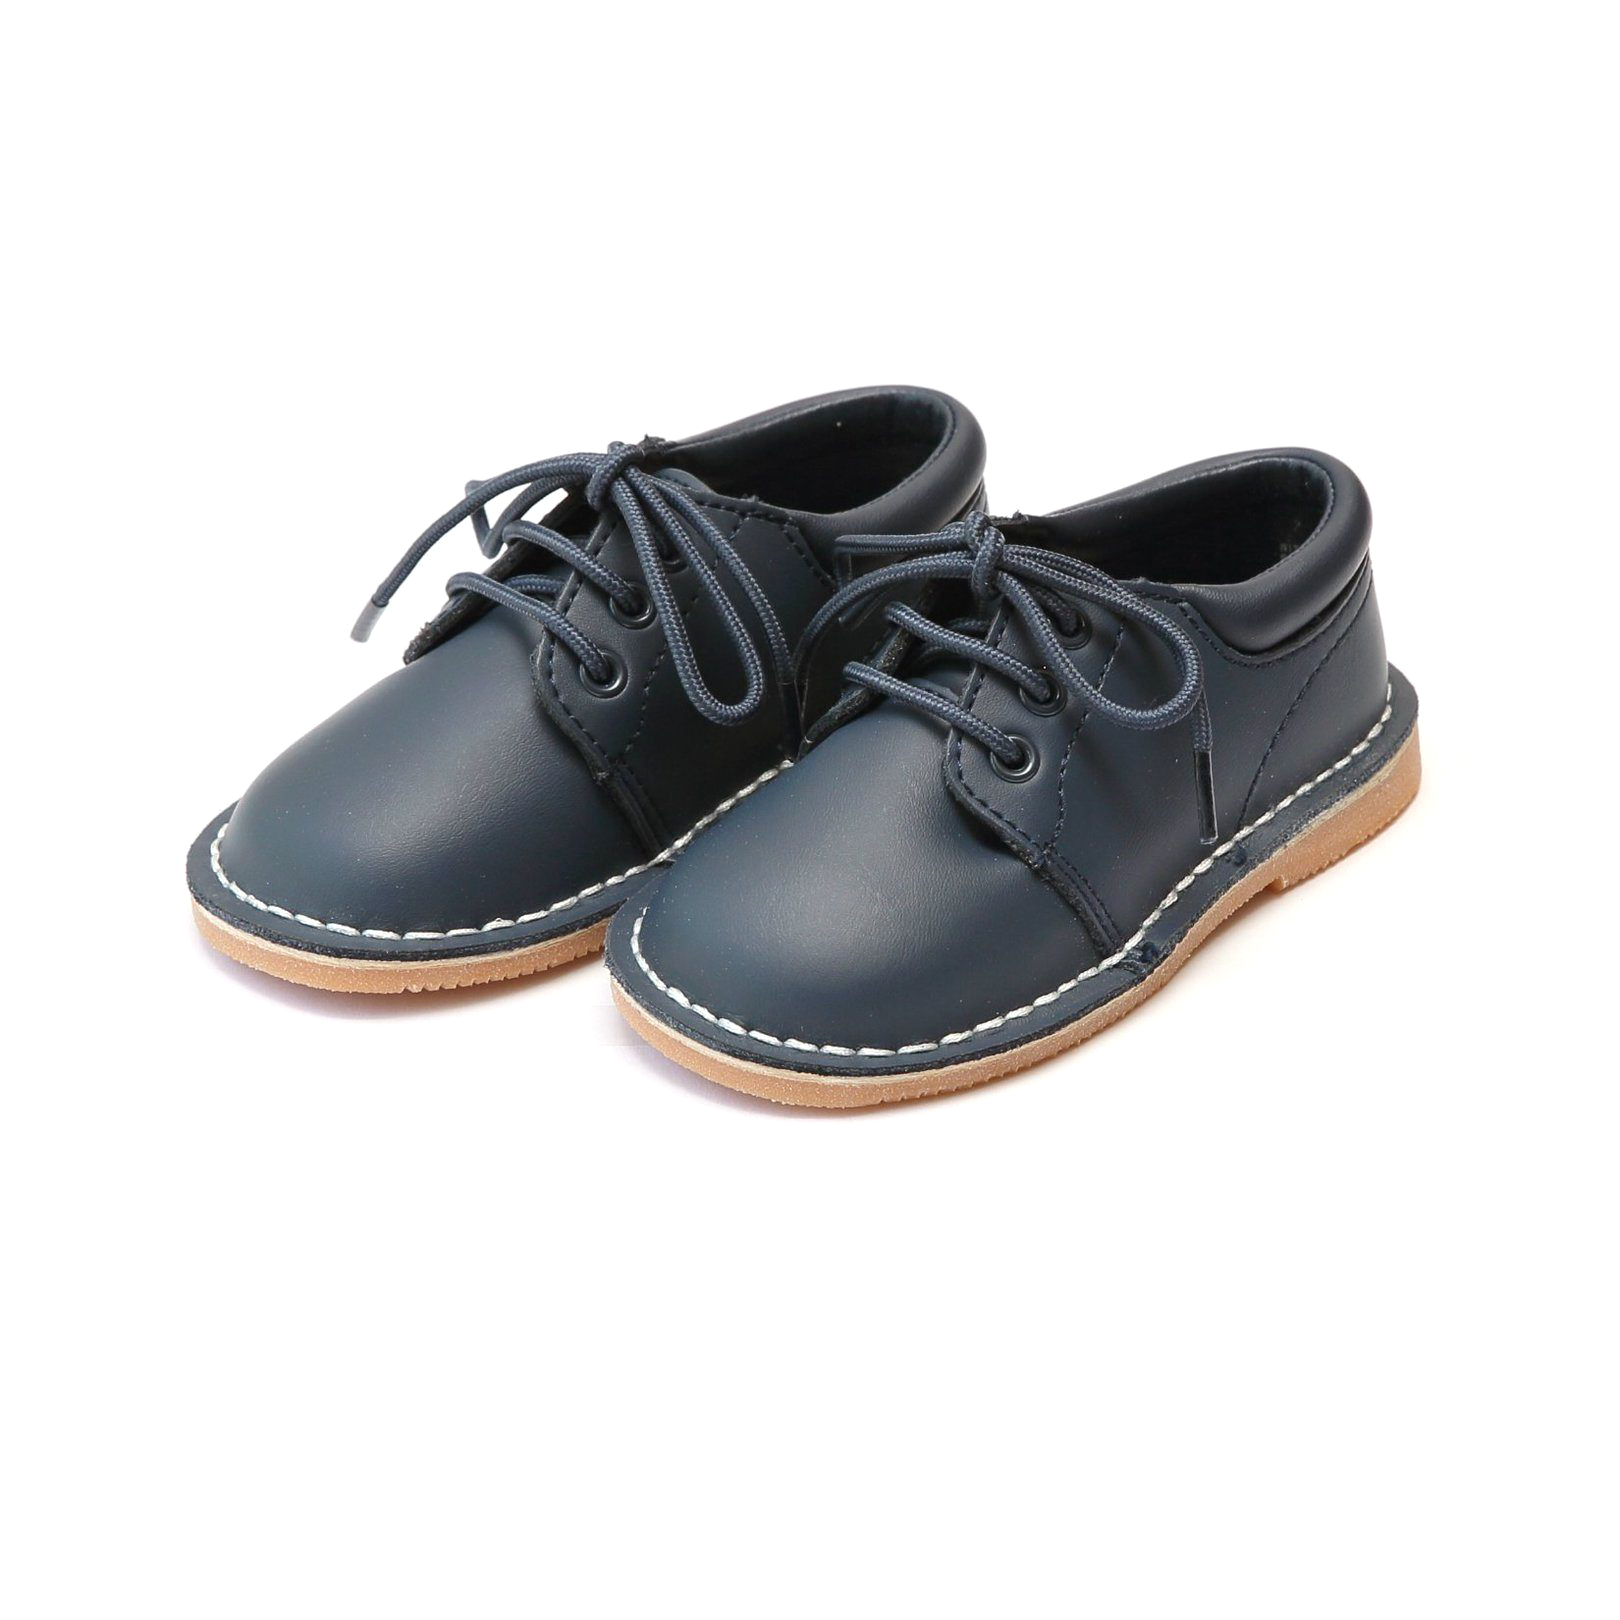 ring bearer shoes stitch down leather lace up shoes